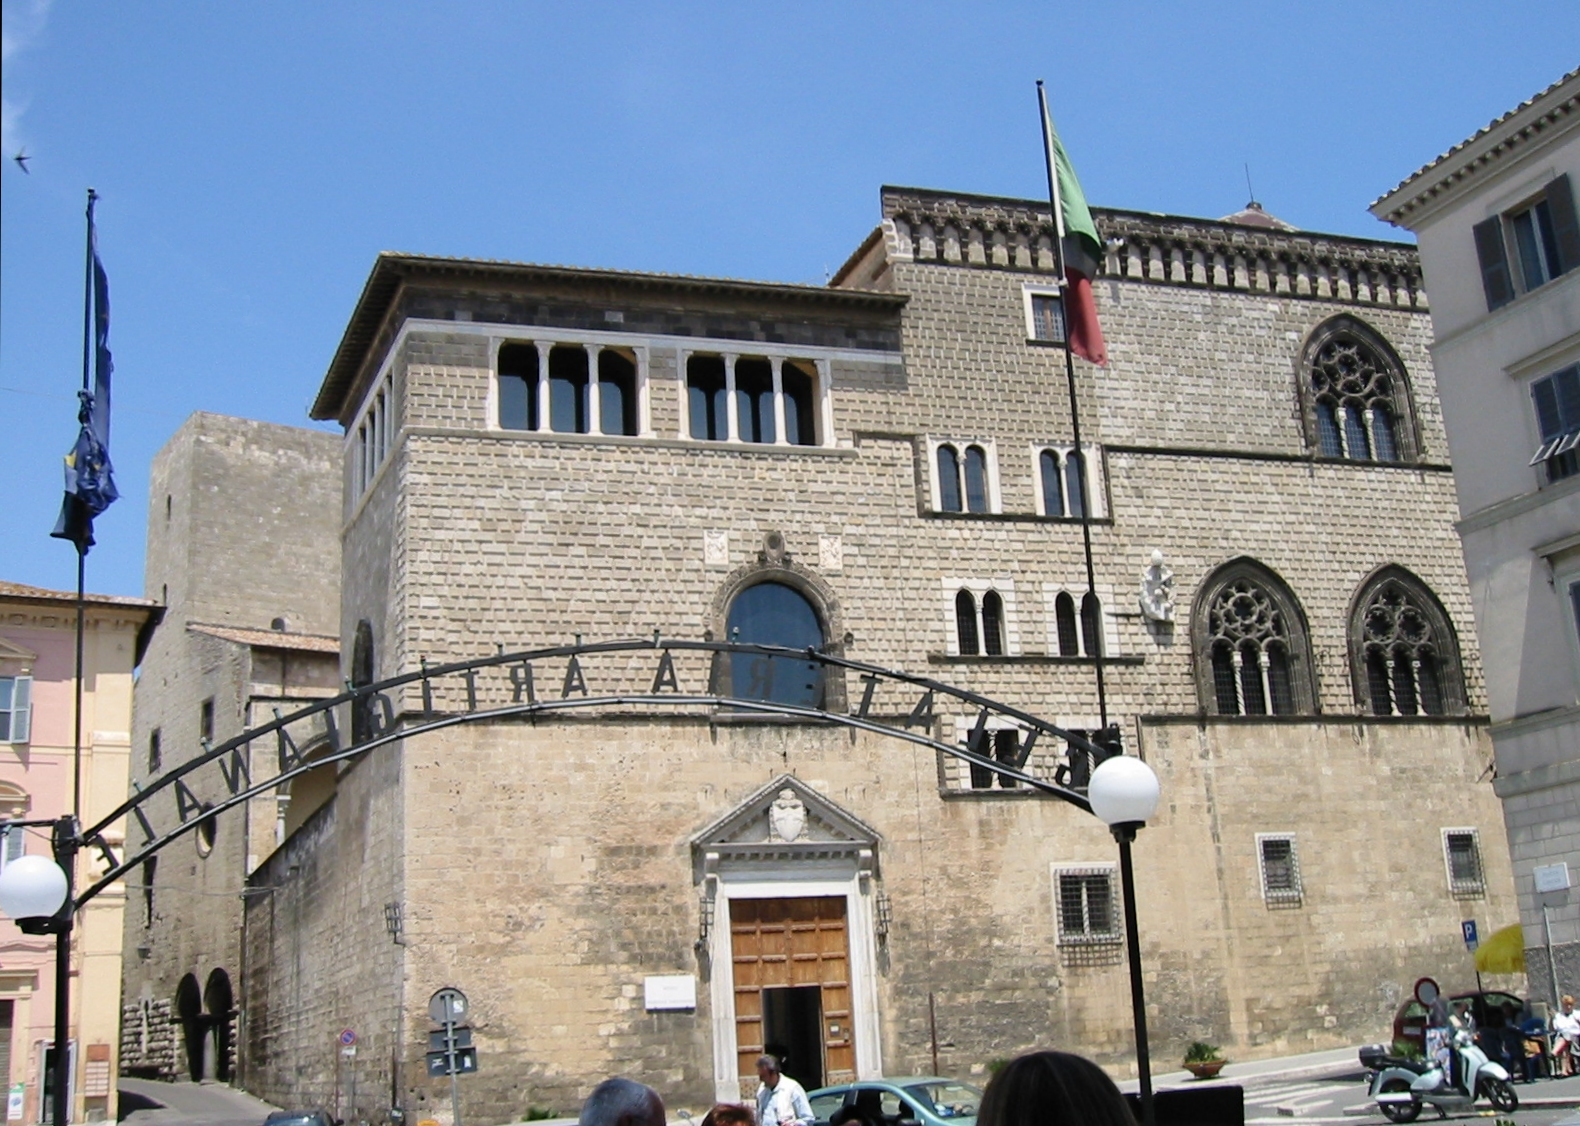 Tarquinia Italy  city images : Tarquinia Museo Nazionale Tarquinese Wikipedia, the free ...